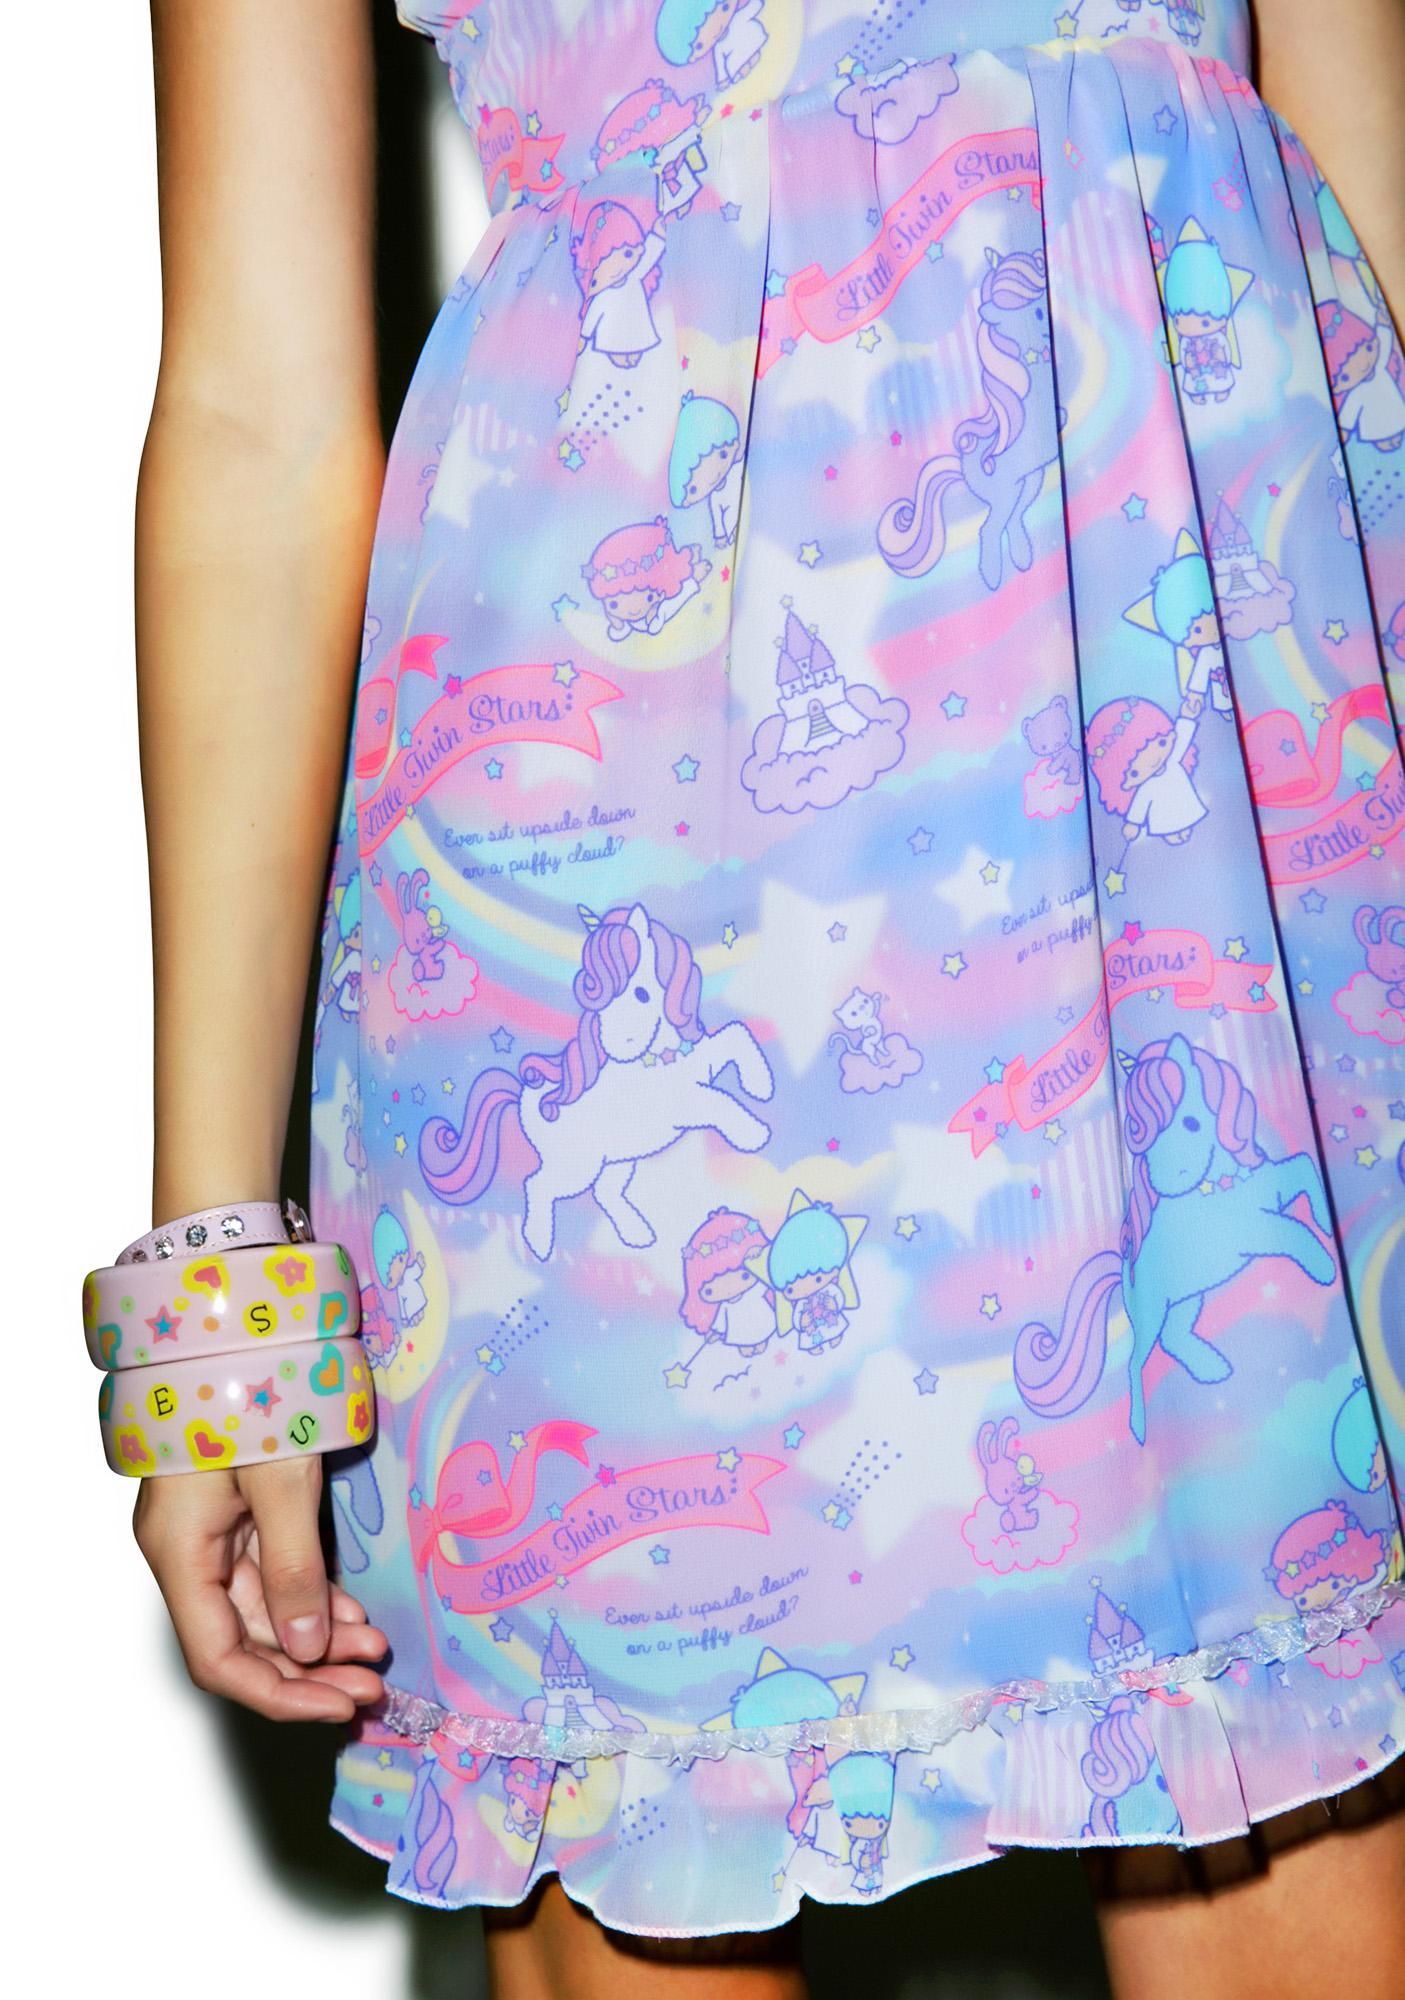 Japan L.A. Little Twin Stars Dreamy Unicorn Babydoll Dress